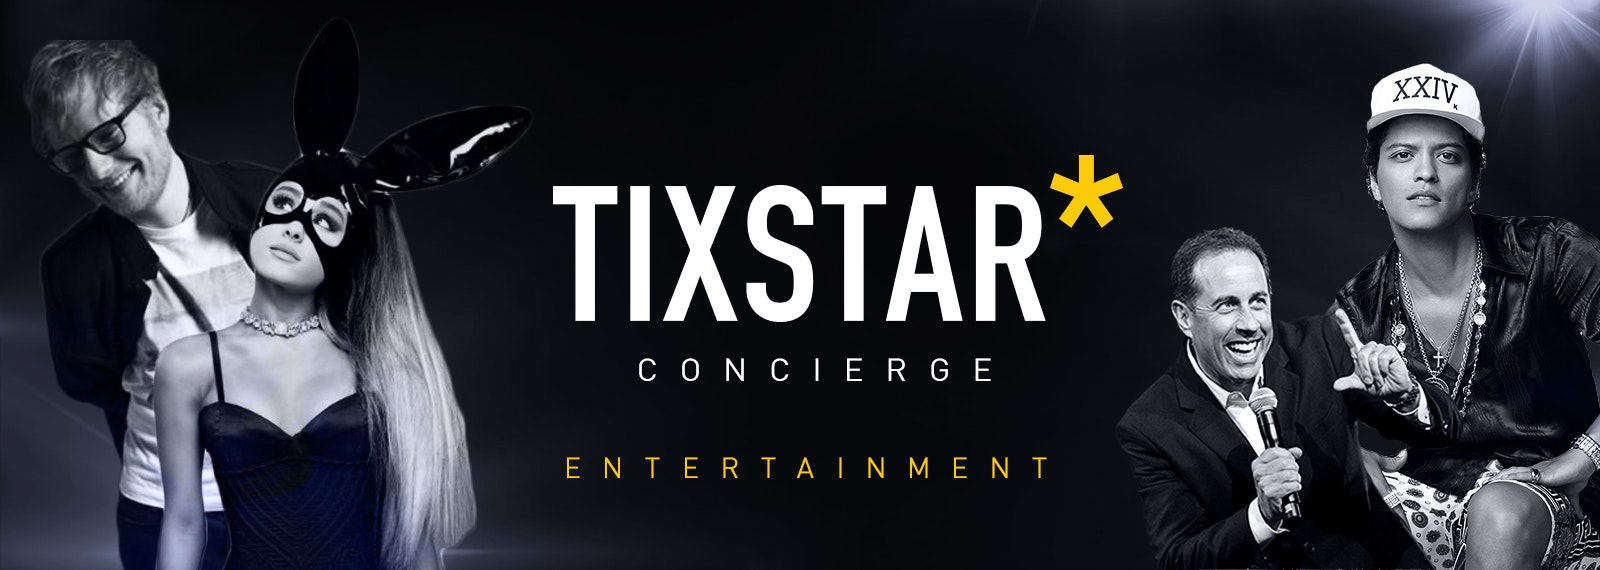 TIXSTAR CONCIERGE ENTERTAINMENT